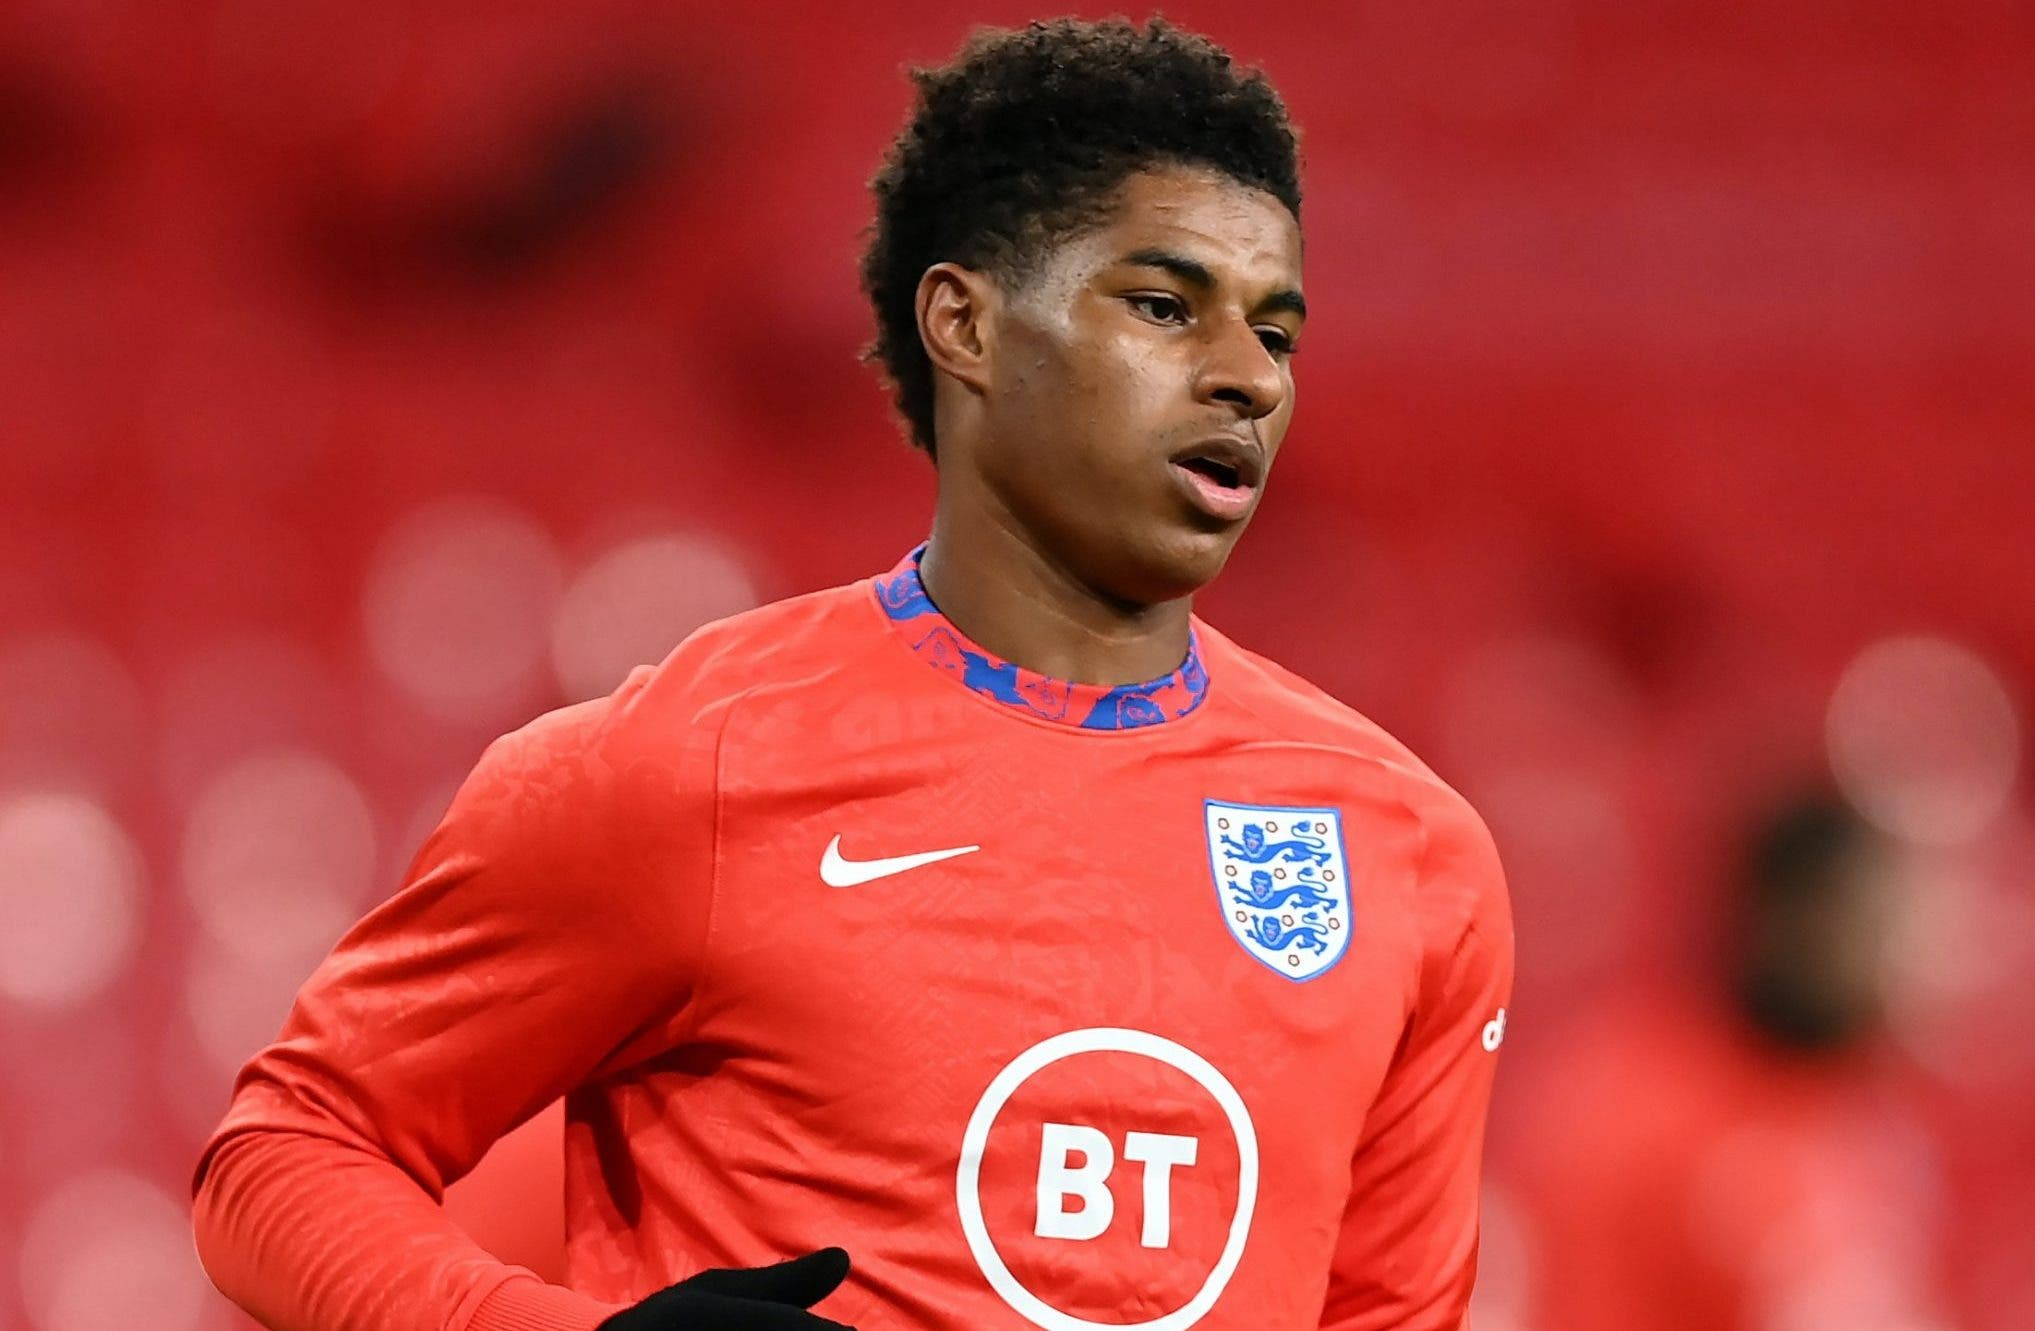 Marcus Rashford petition to end child poverty surpasses 250,000 signatures